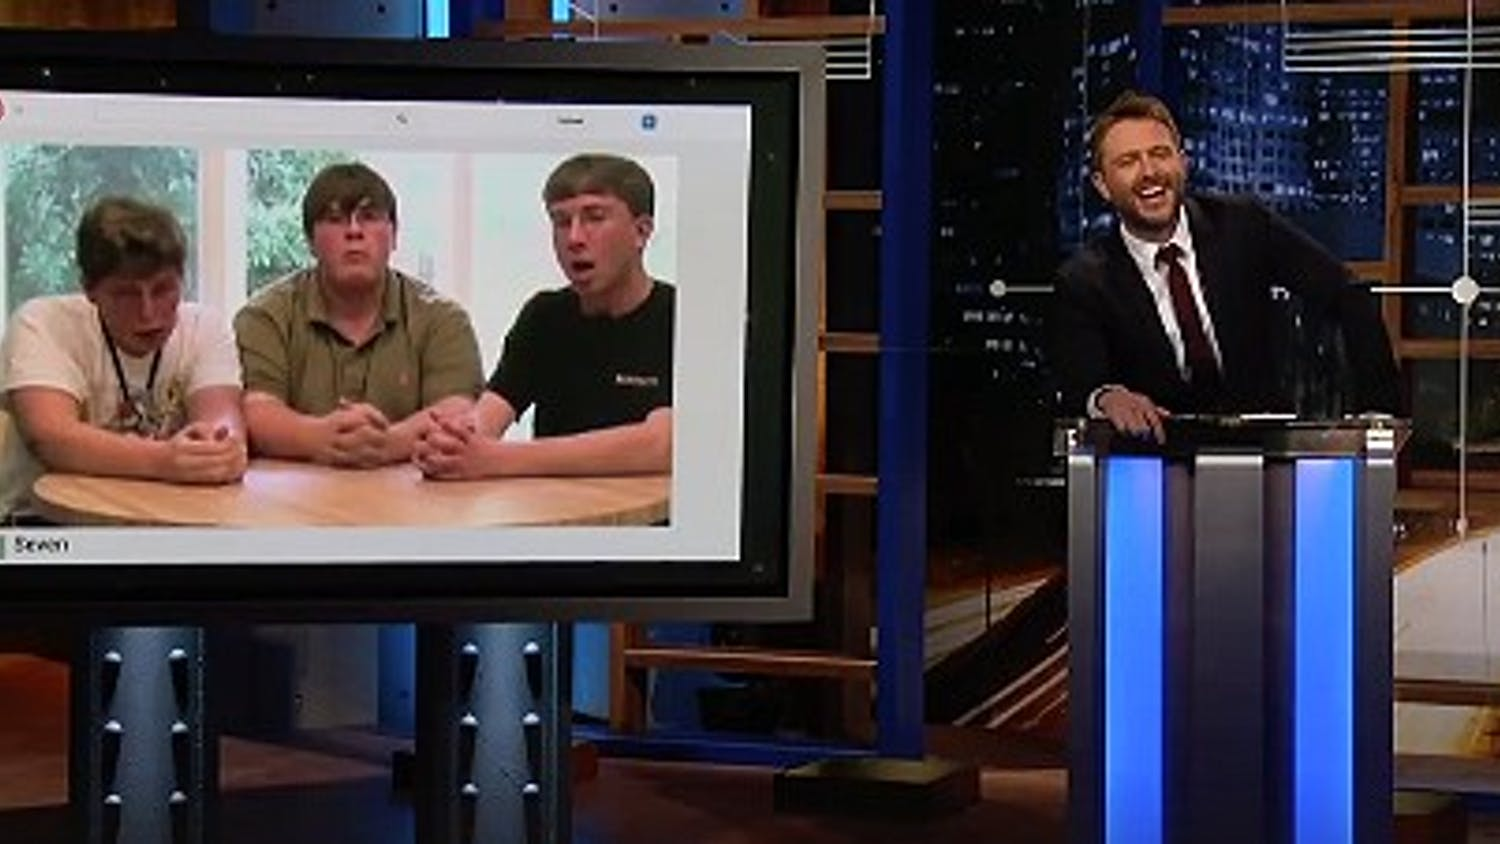 """Stephen Simmons and Scott McFall's YouTube video makes its way to """"@midnight with Chris Hardwick"""" on Comedy Central."""